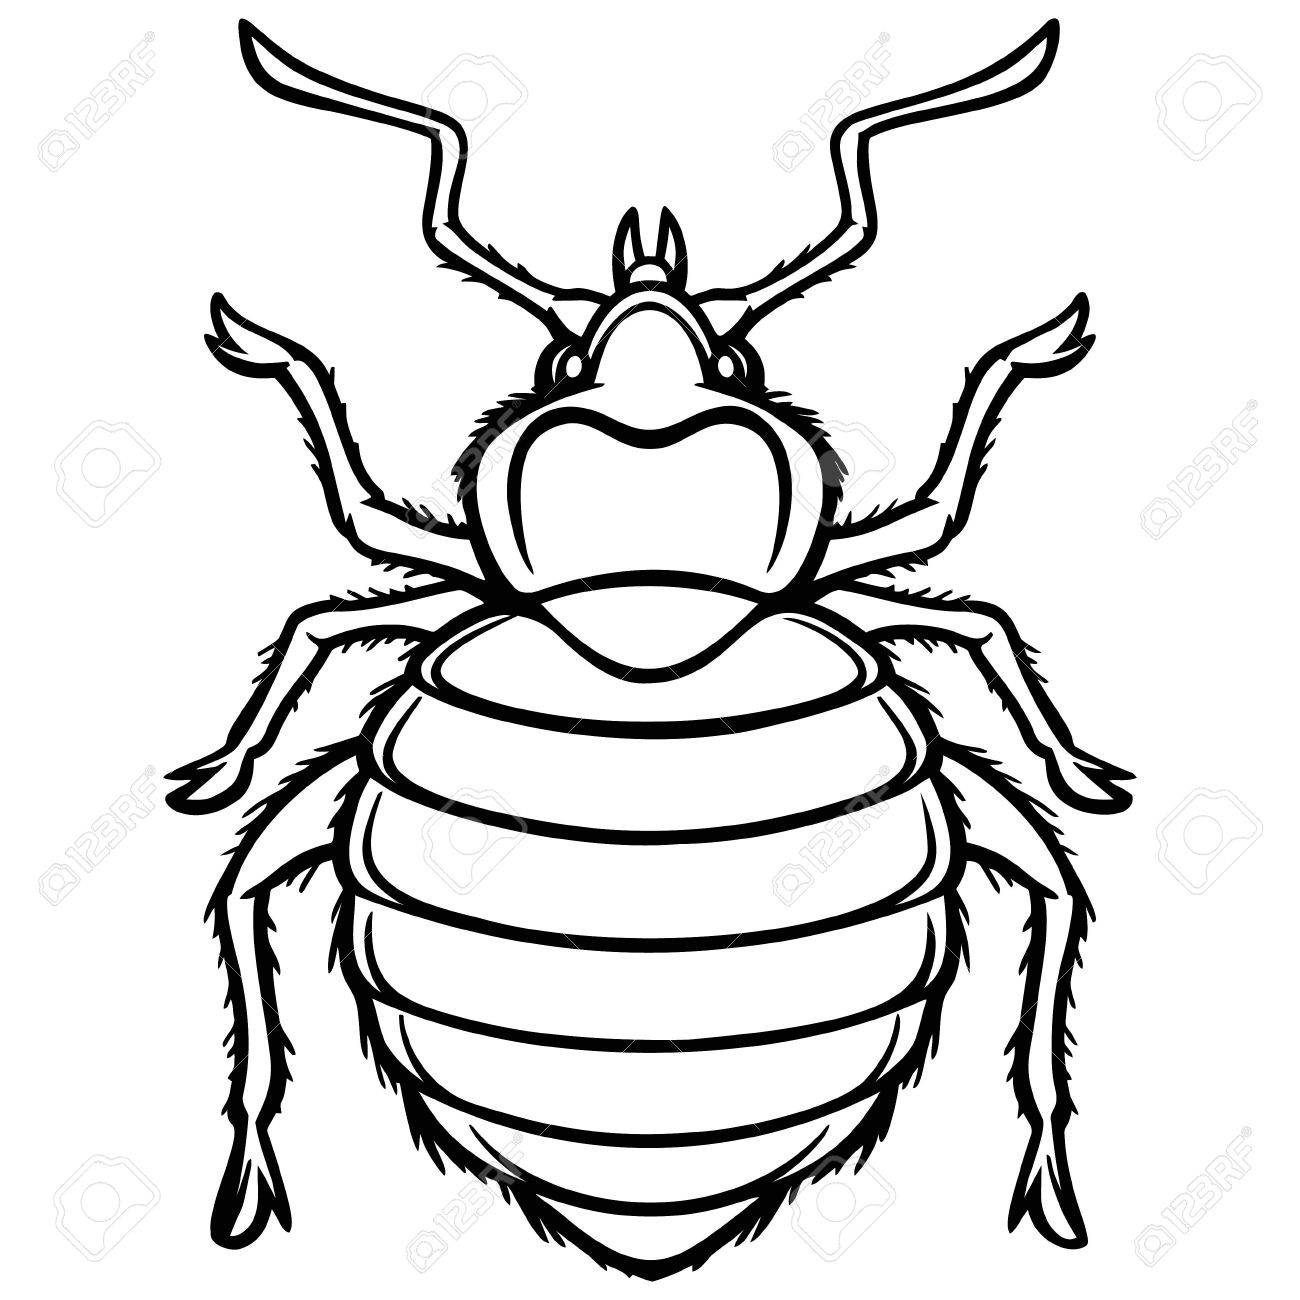 Bed Bug Graphic Illustration.